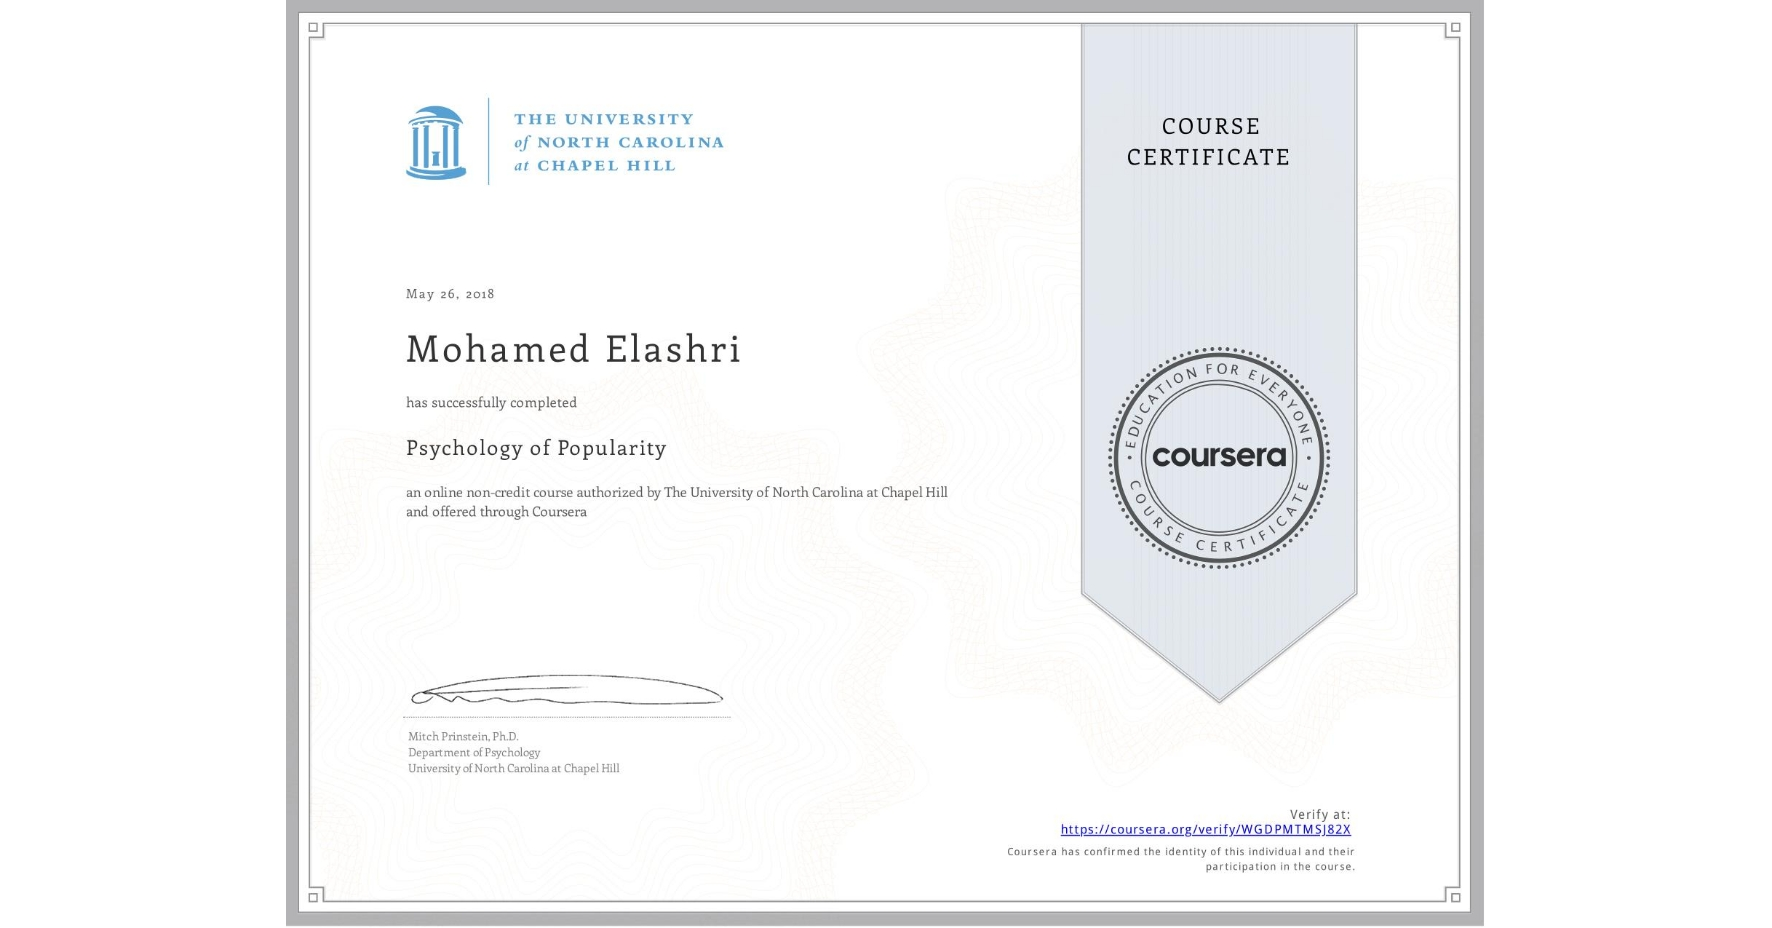 View certificate for Mohamed Elashri, Psychology of Popularity, an online non-credit course authorized by The University of North Carolina at Chapel Hill and offered through Coursera